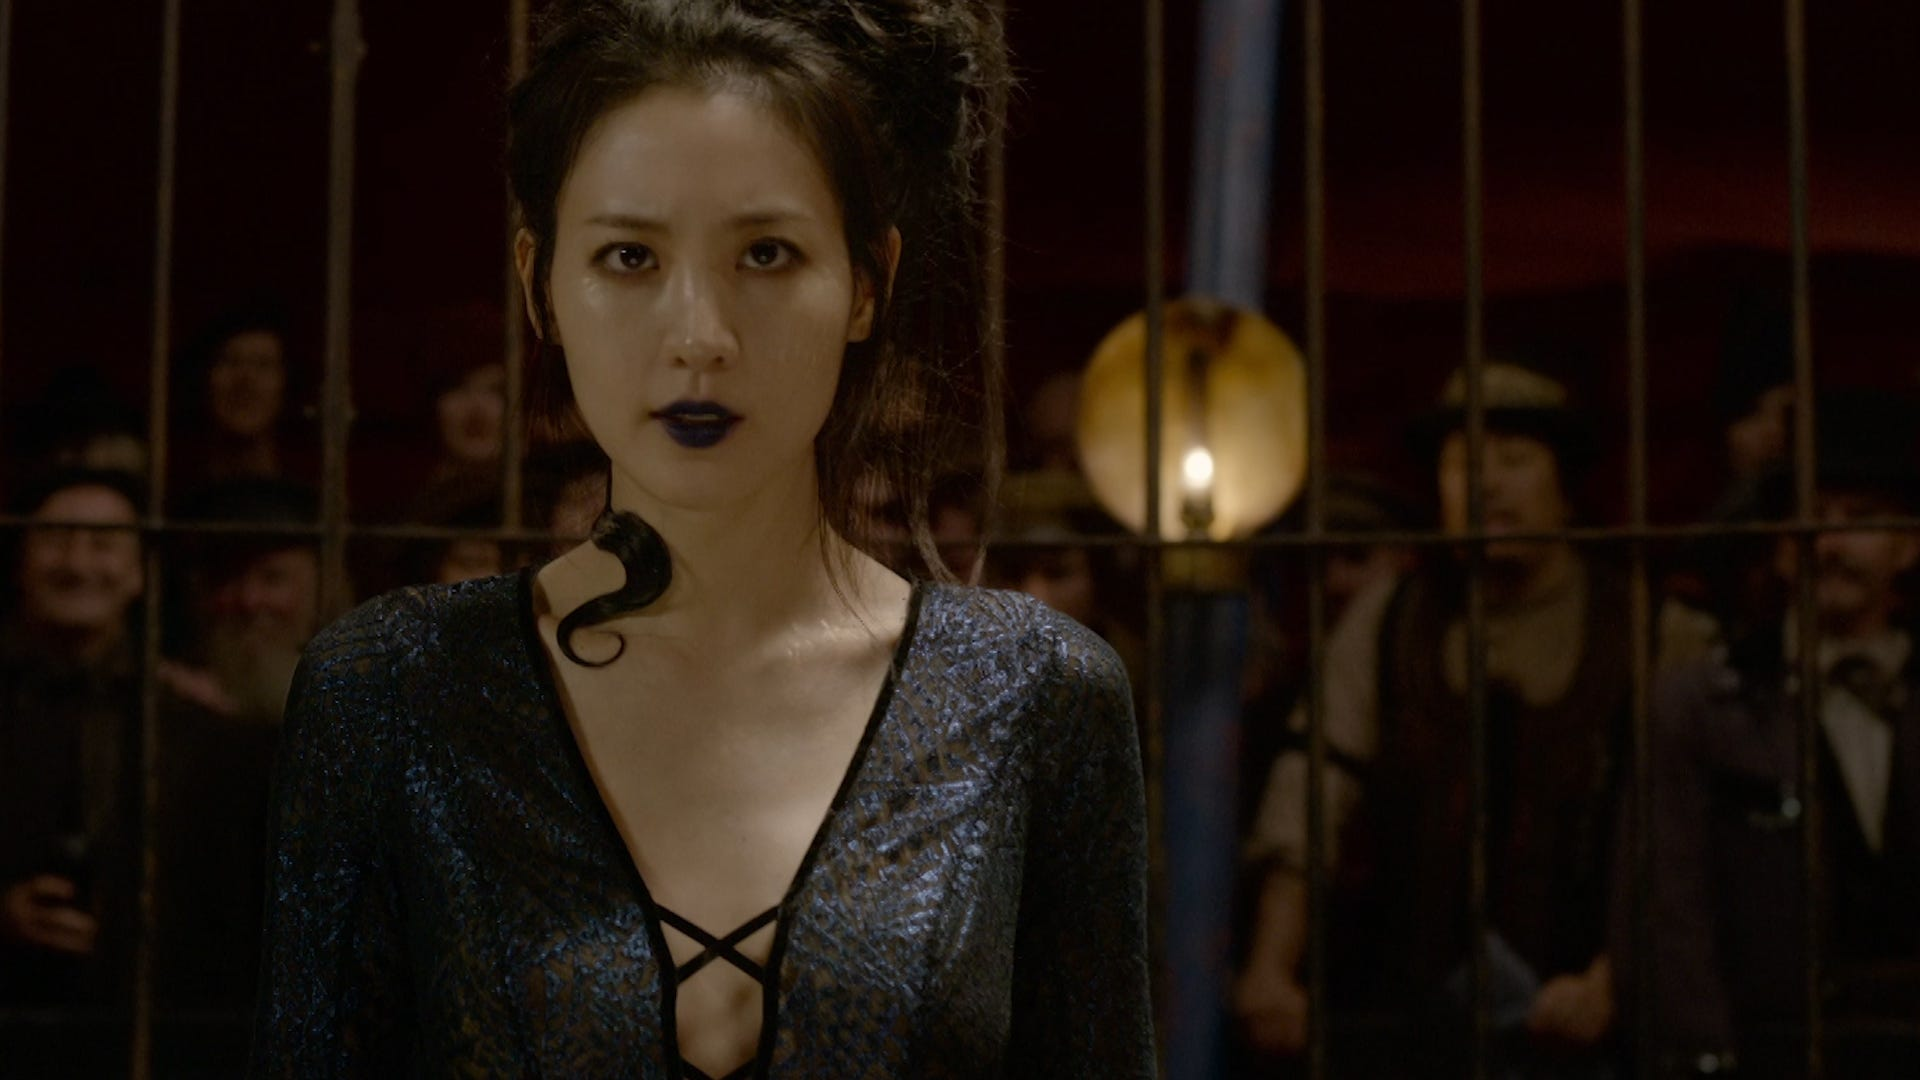 New 'Fantastic Beasts 2' trailer's jaw-dropping character reveal